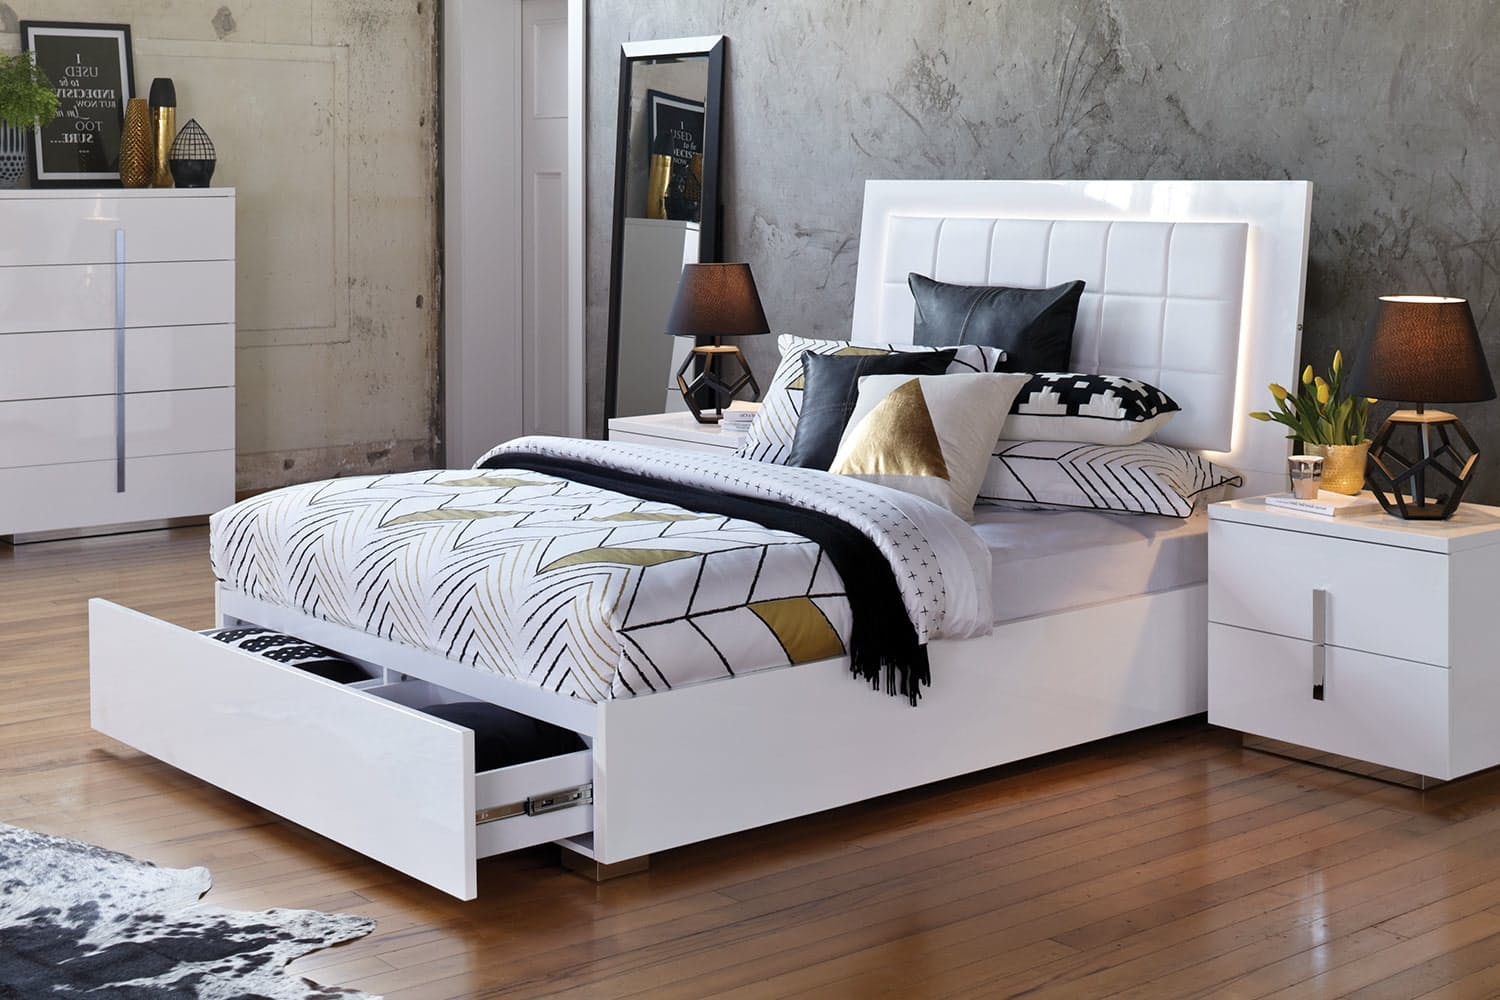 Small Queen Bed Frame Bed Frames Ideas